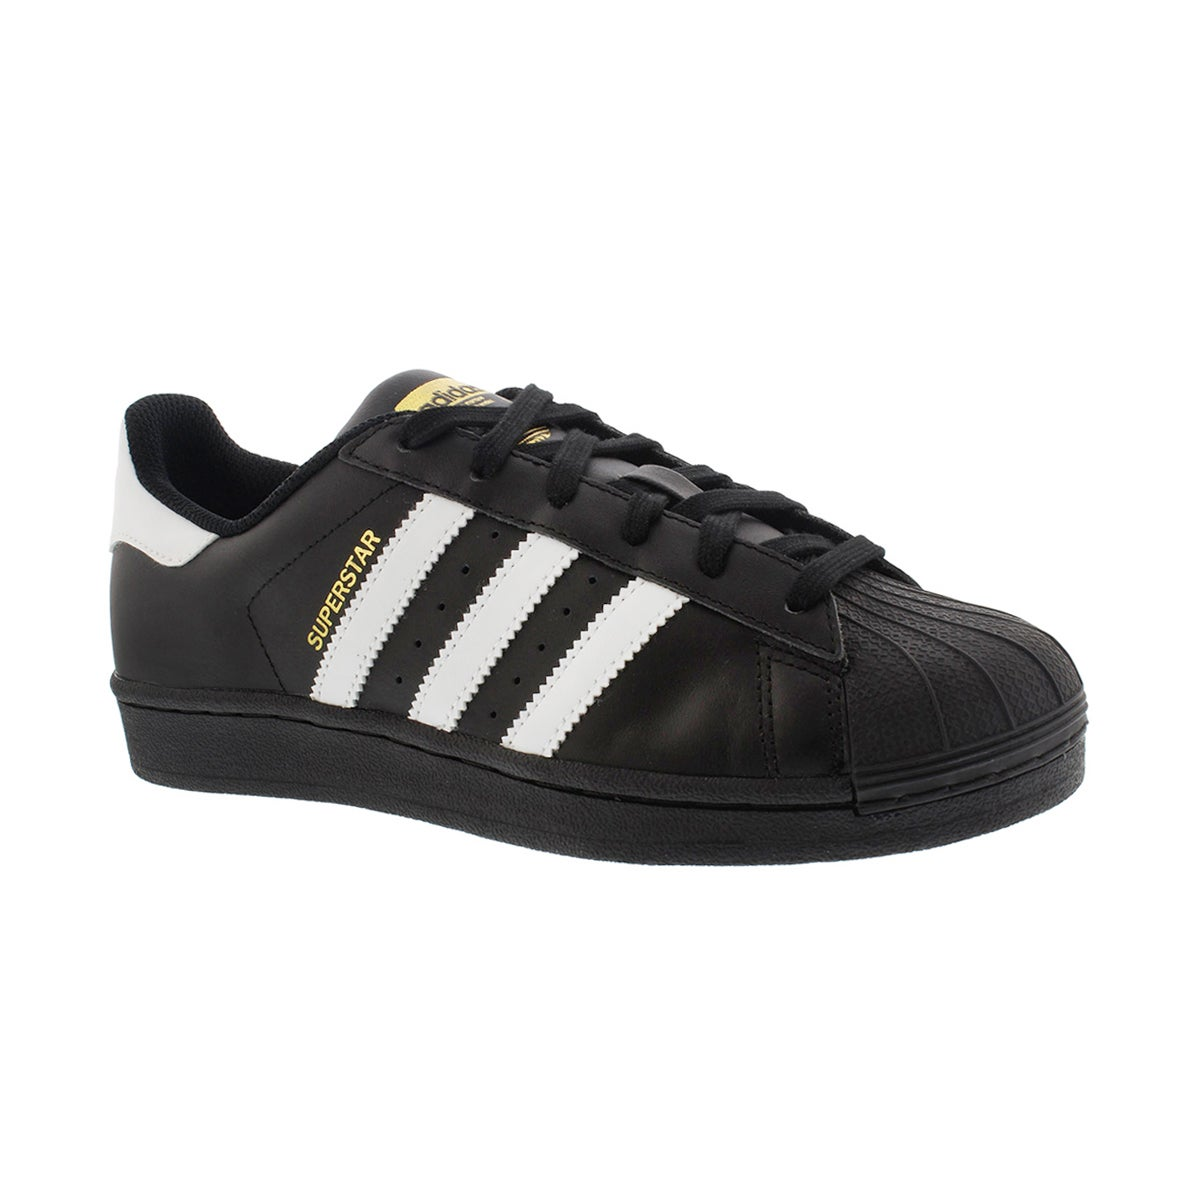 Boys' SUPERSTAR FOUNDATION black/white sneakers